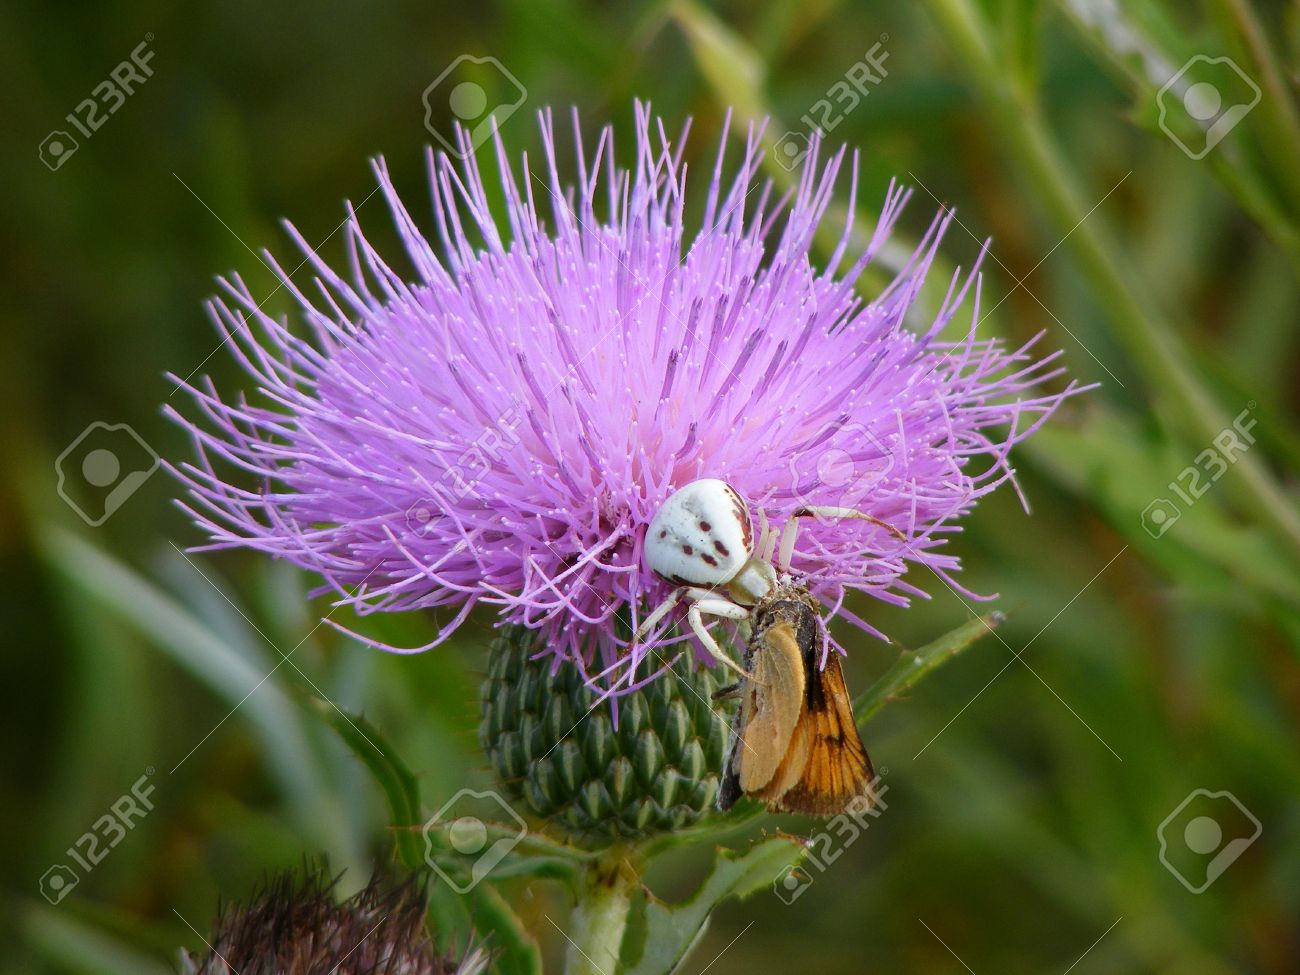 A white spider eating a butterfly on a purple thistle flower stock a white spider eating a butterfly on a purple thistle flower stock photo 10067196 mightylinksfo